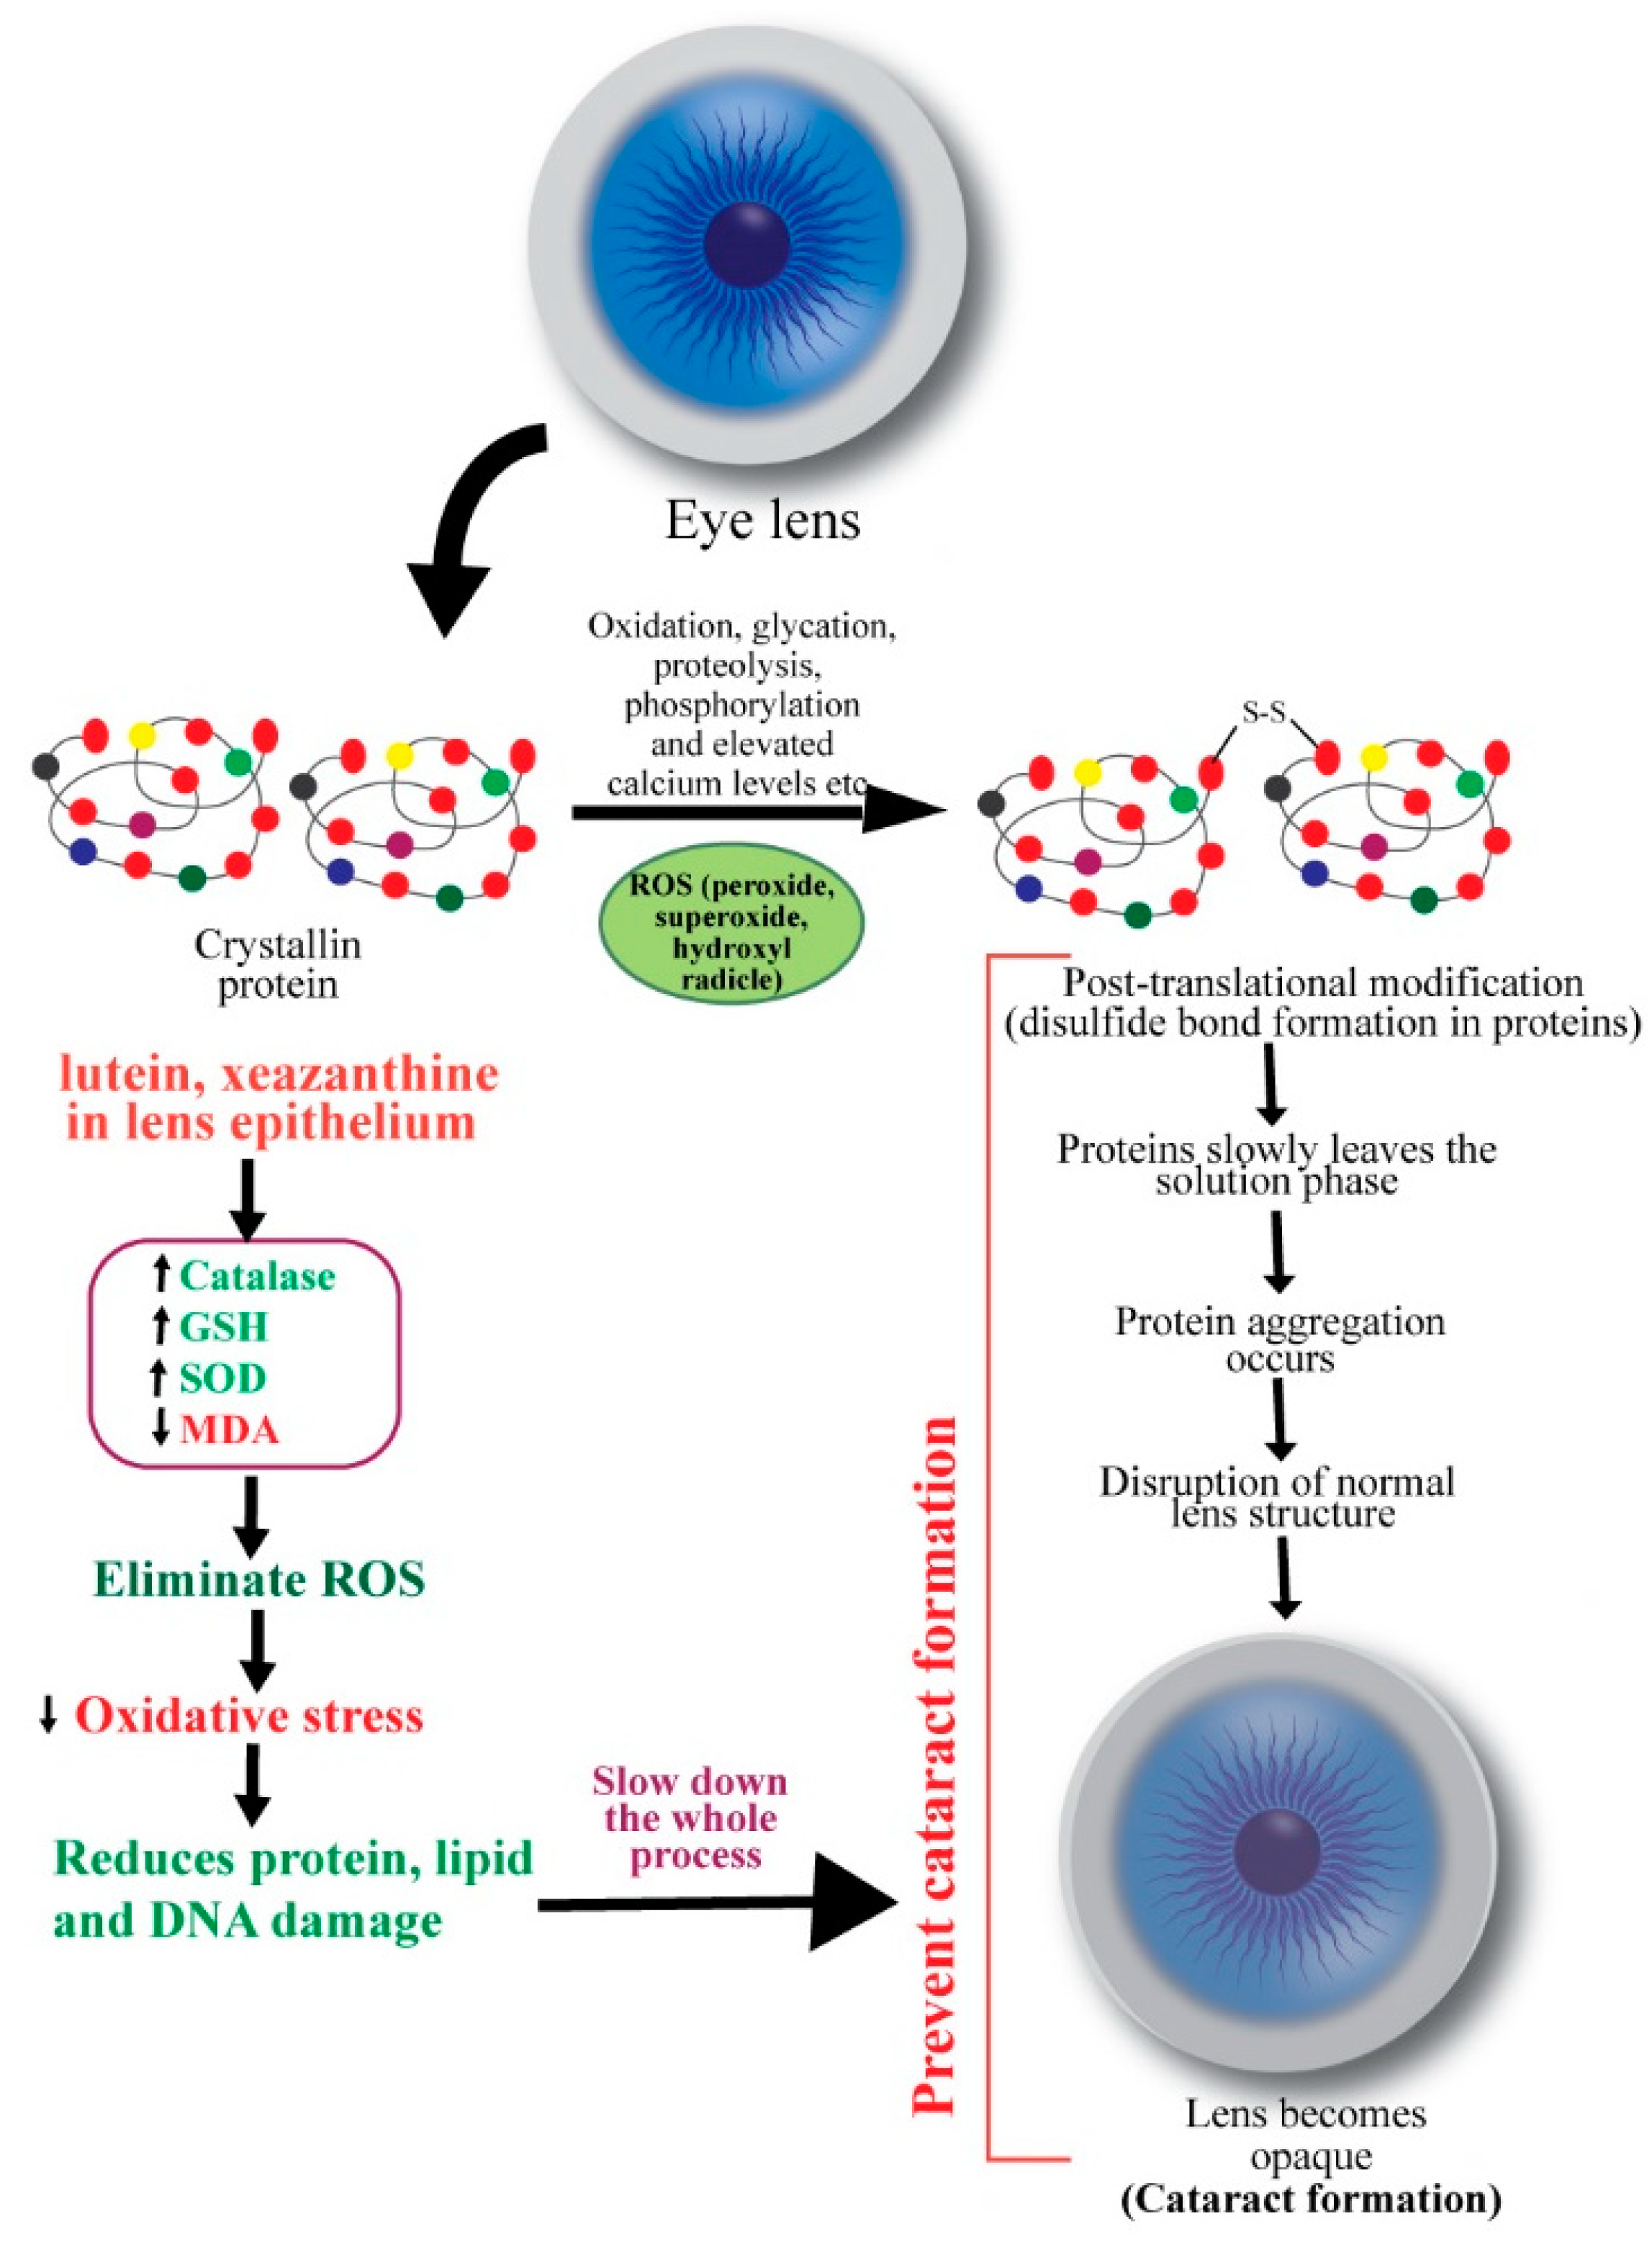 Schematic diagram showing the mechanisms of action of carotenoids to prevent cataract. ROS: reactive oxygen species.